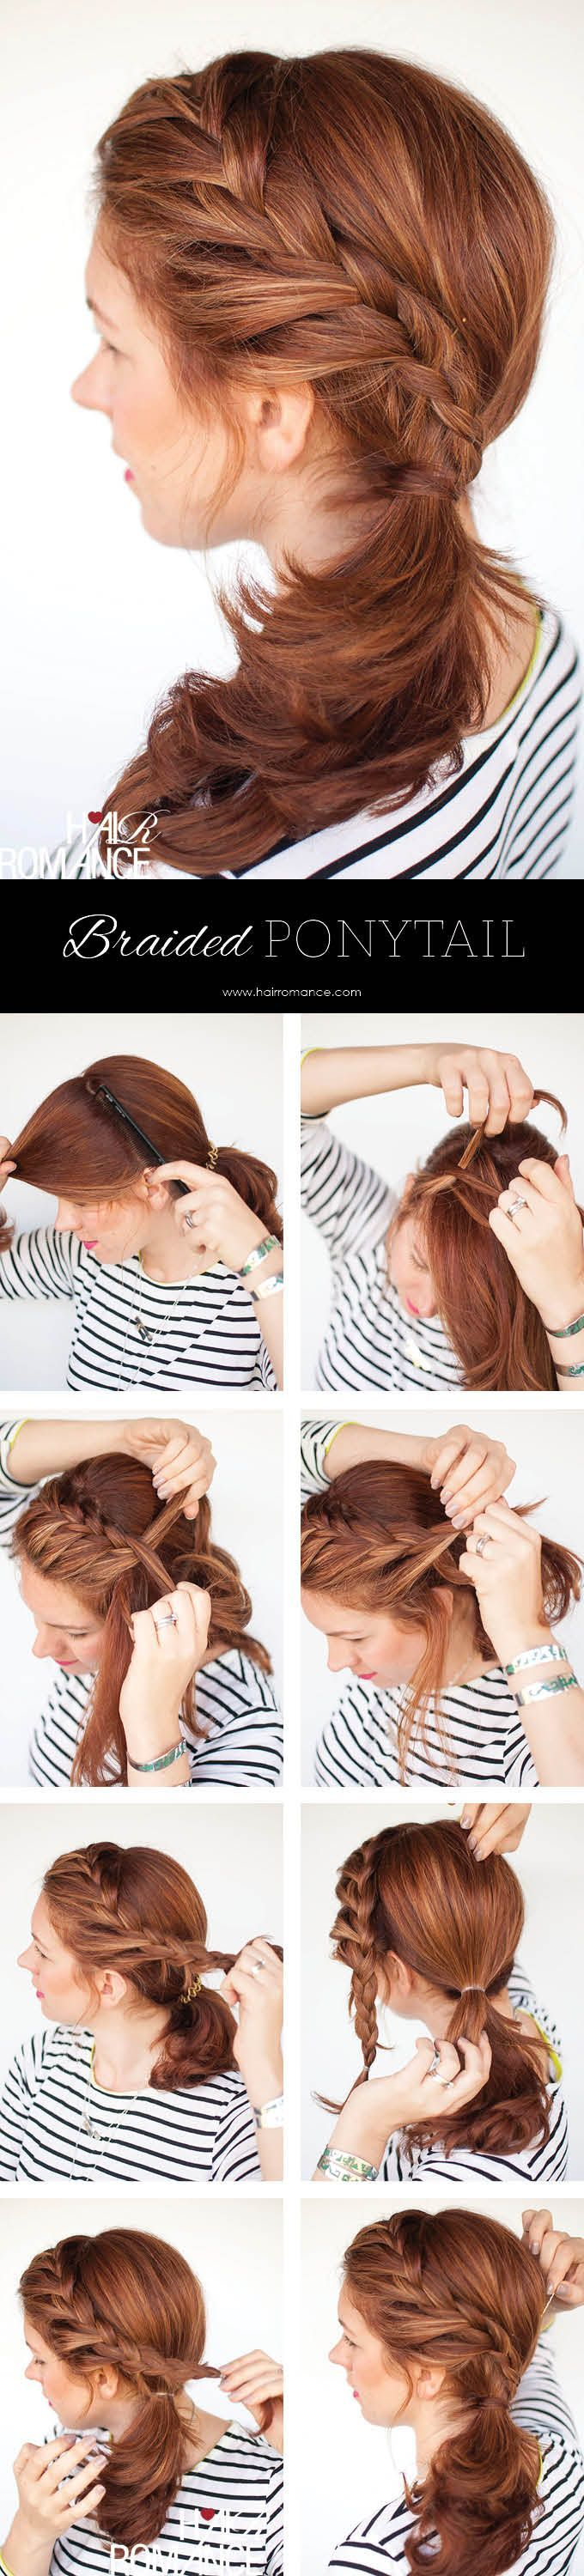 171 best Hair Tutorials Hairstyles for Women images on Pinterest